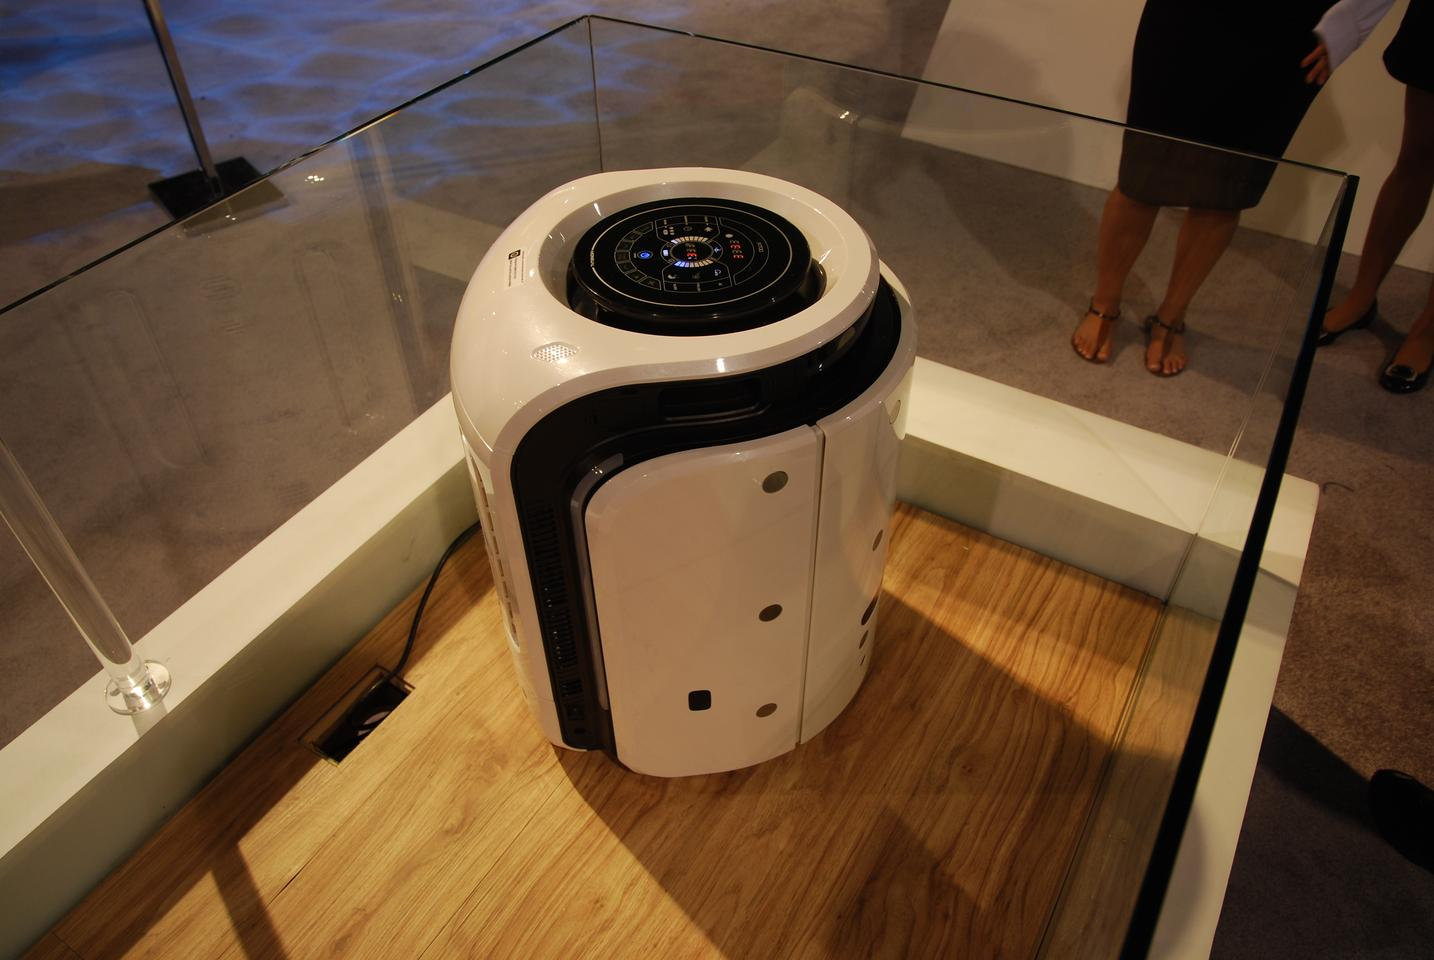 Rydis' H800 robotic air purifier roams the house in search of allergens, odor and dust